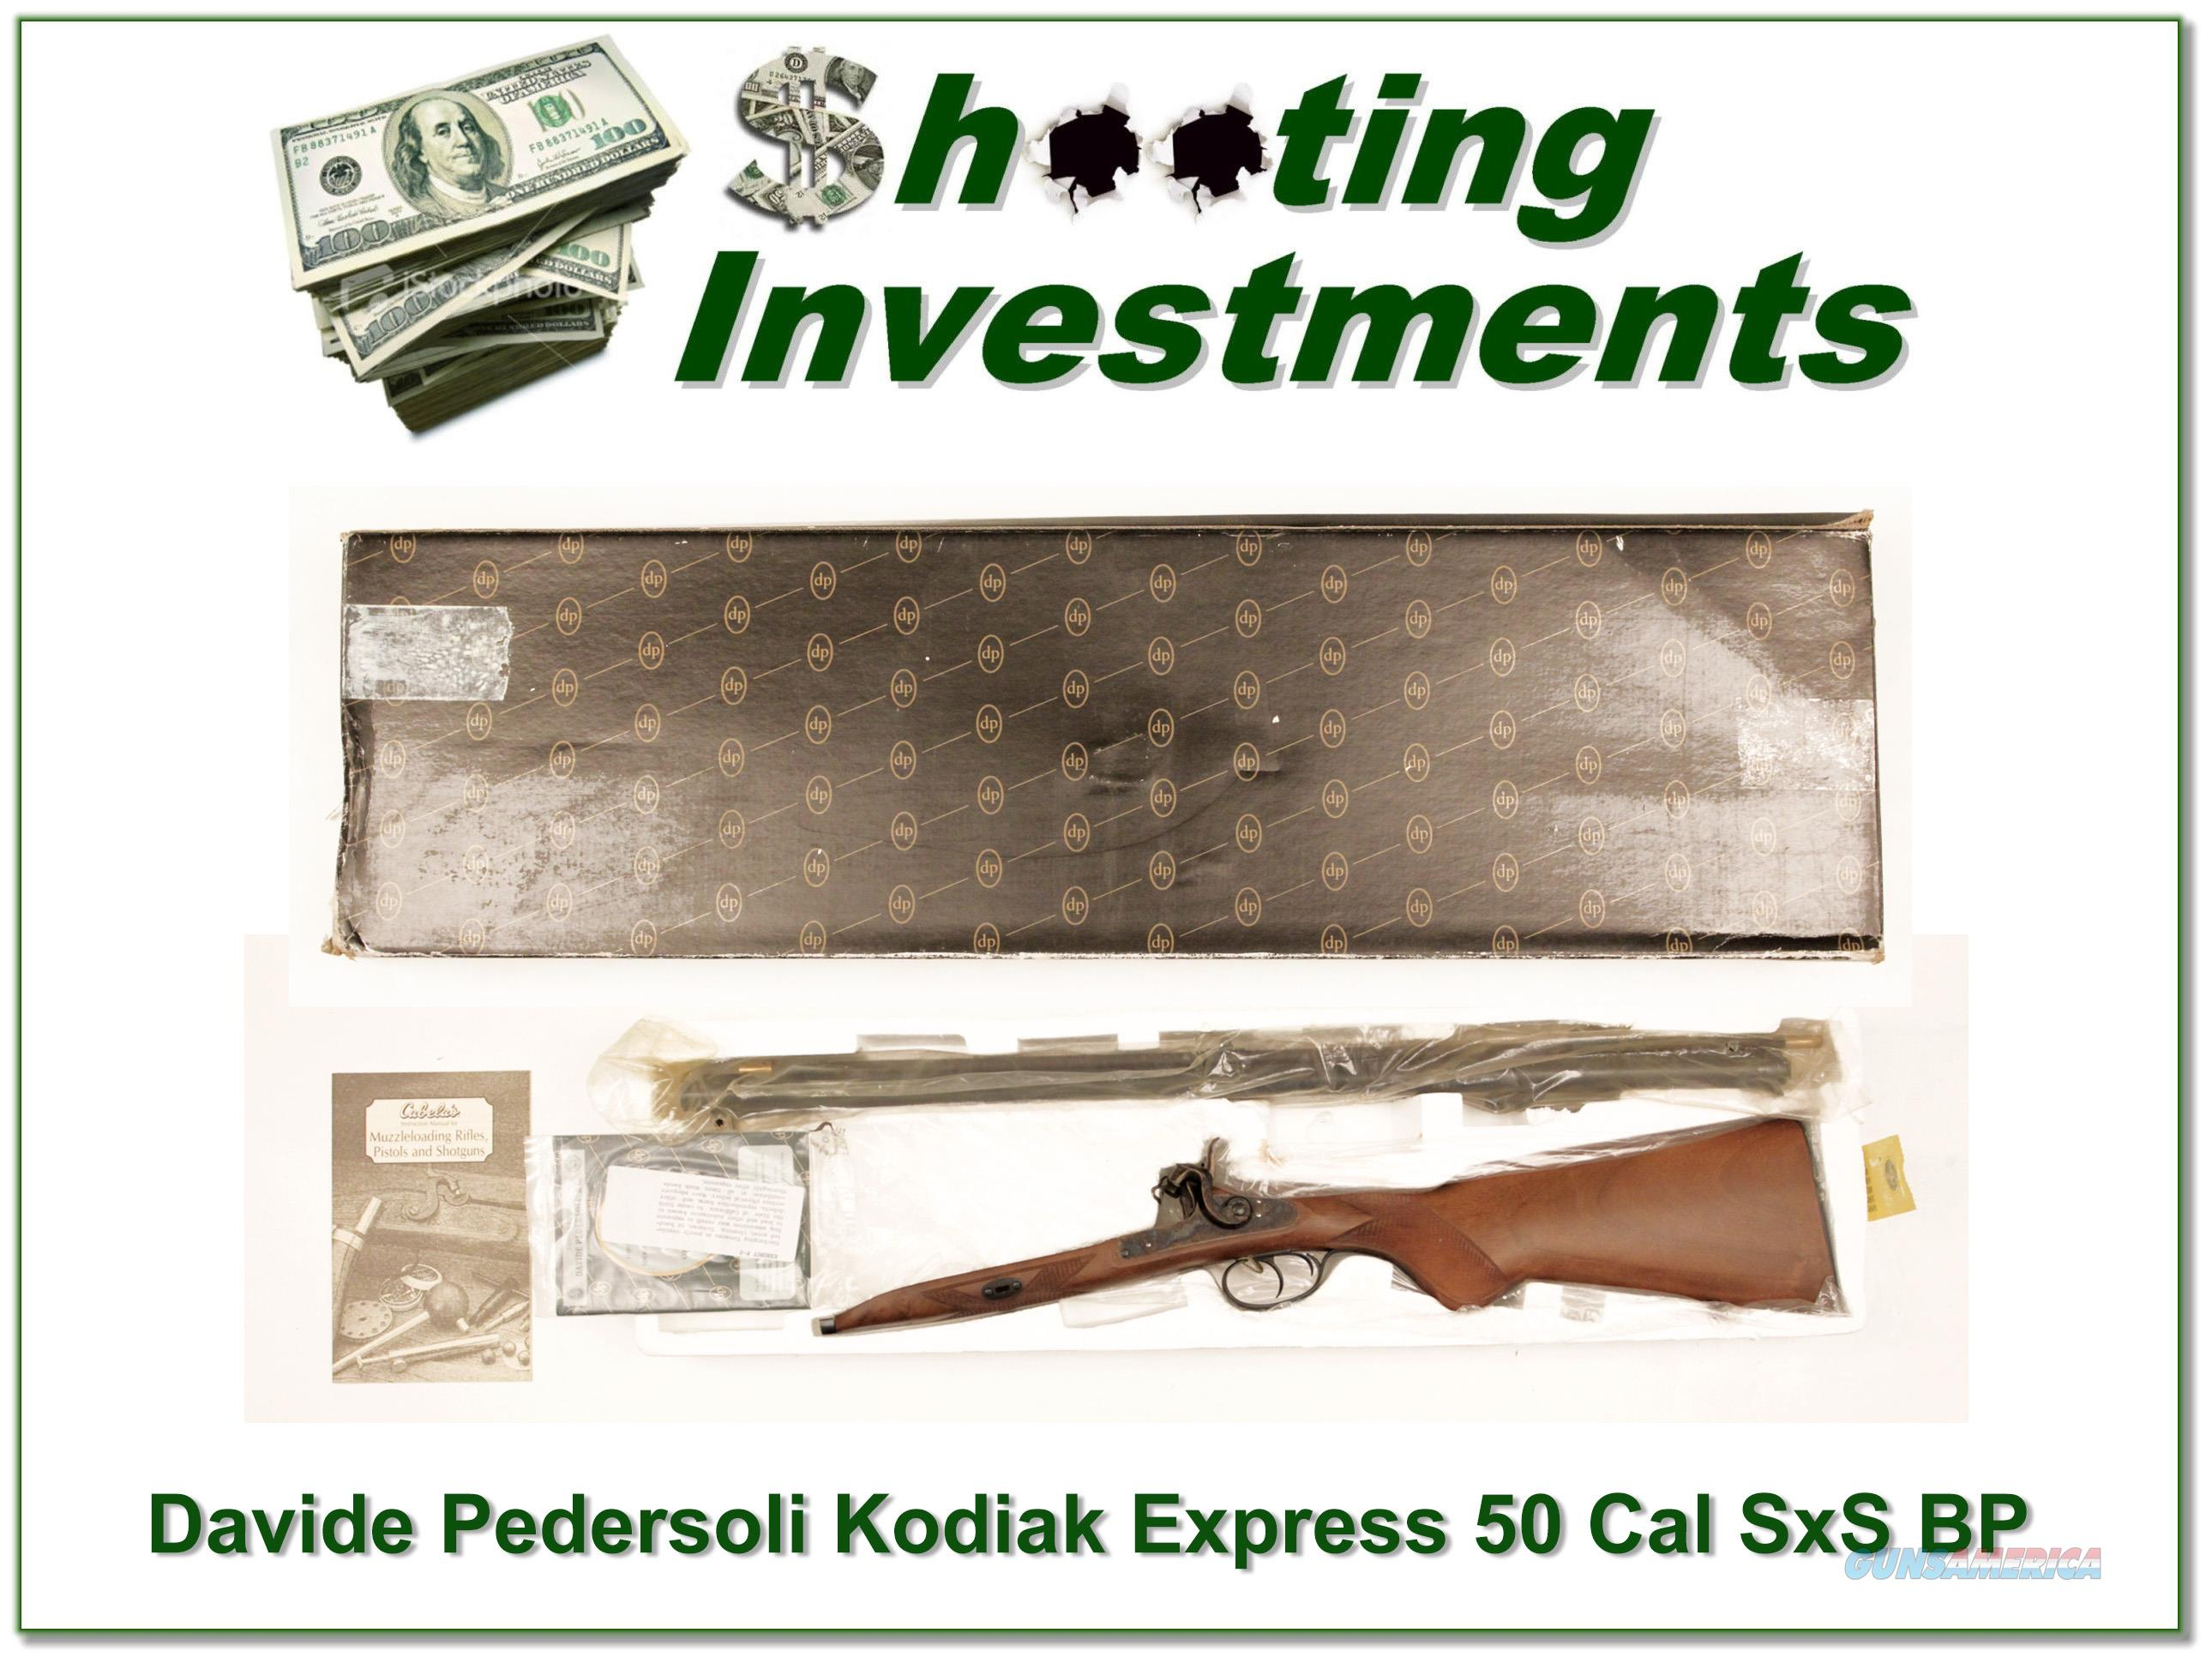 Davide Pedersoli Kodiak Express Double Barrel 50 Caliber  Guns > Rifles > Pedersoli Rifles > Flintlock